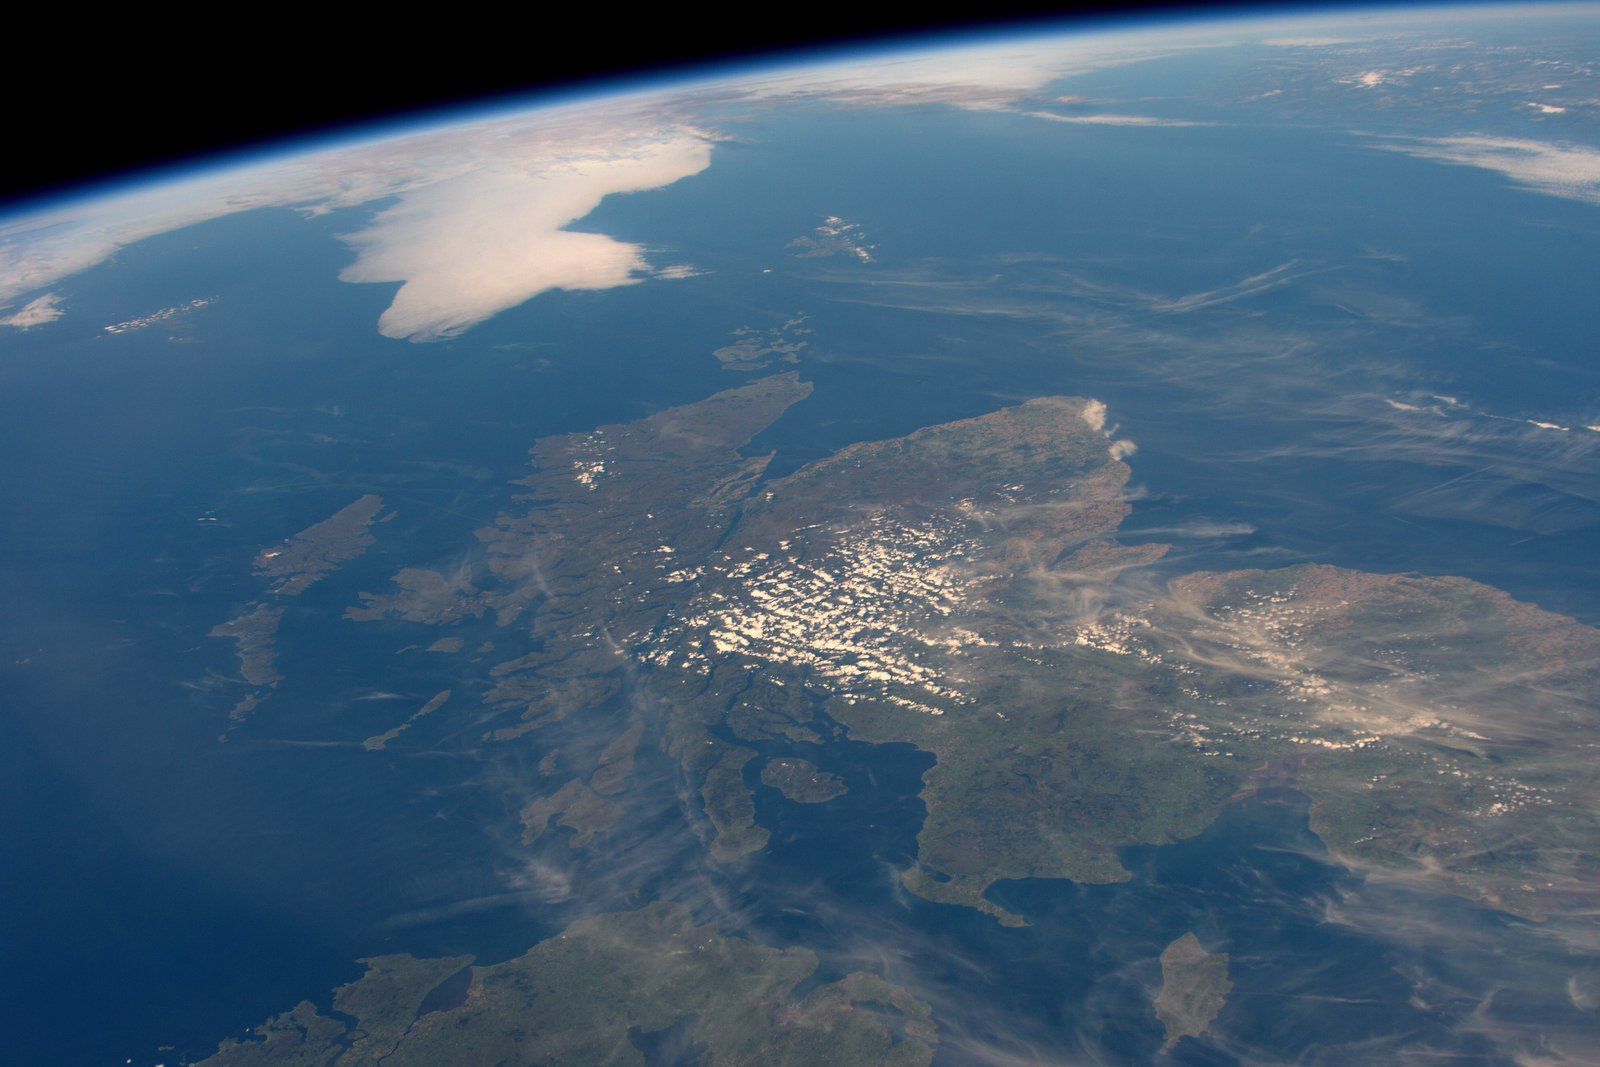 Scotland from the International Space Station (Twitter / @Astro_Jeff)